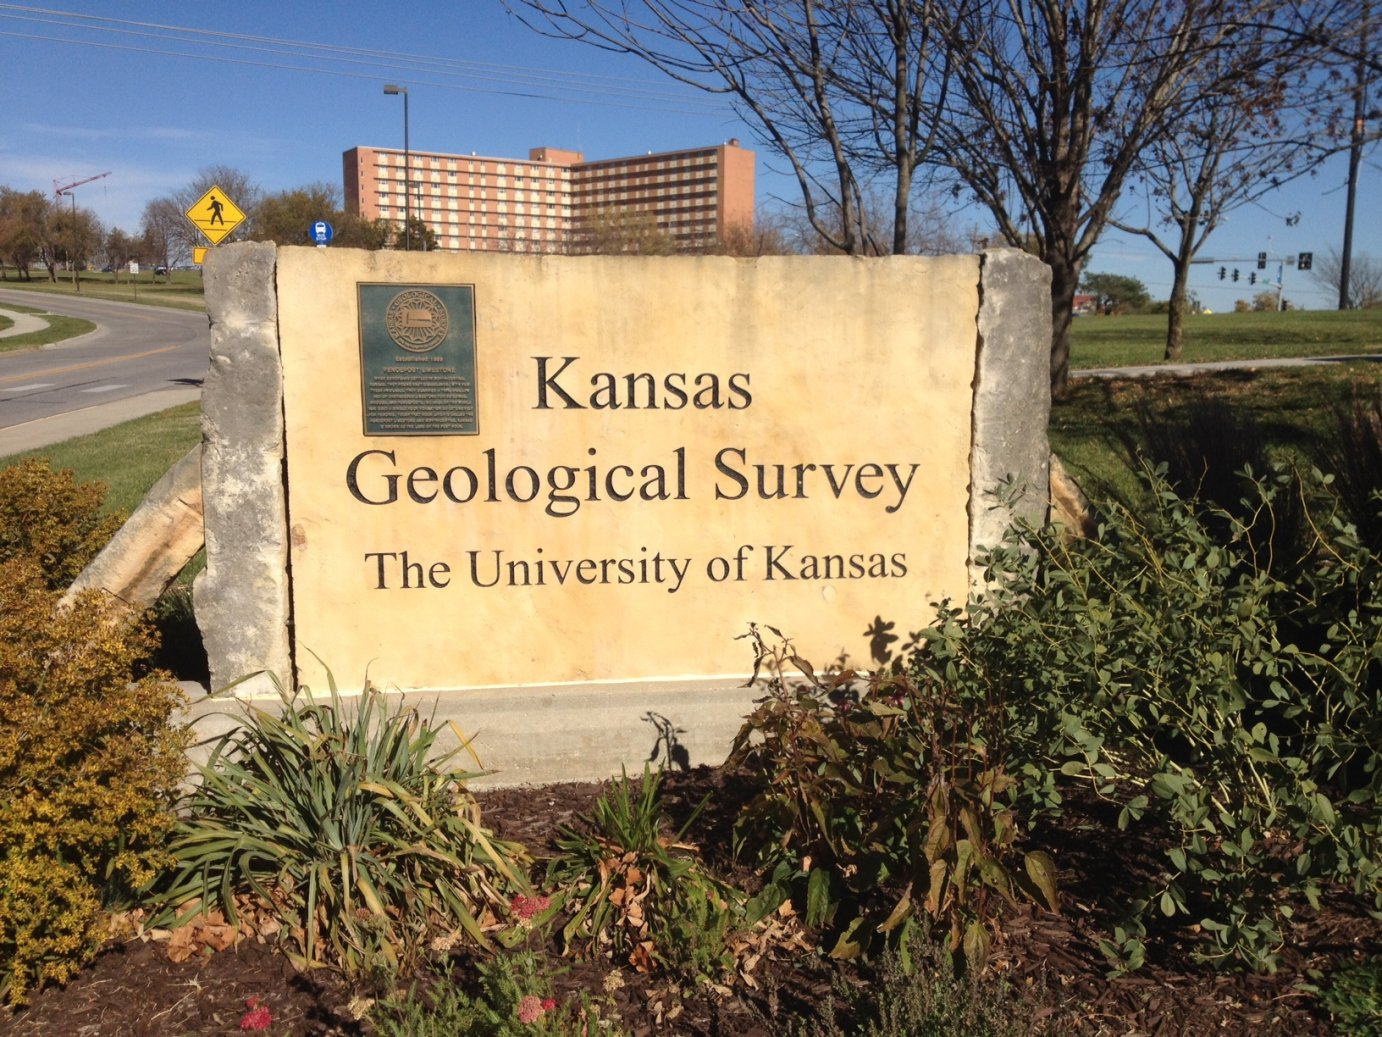 Entrance sign to the Kansas Geological Survey at the University of Kansas.  (Photo by J. Schafer)